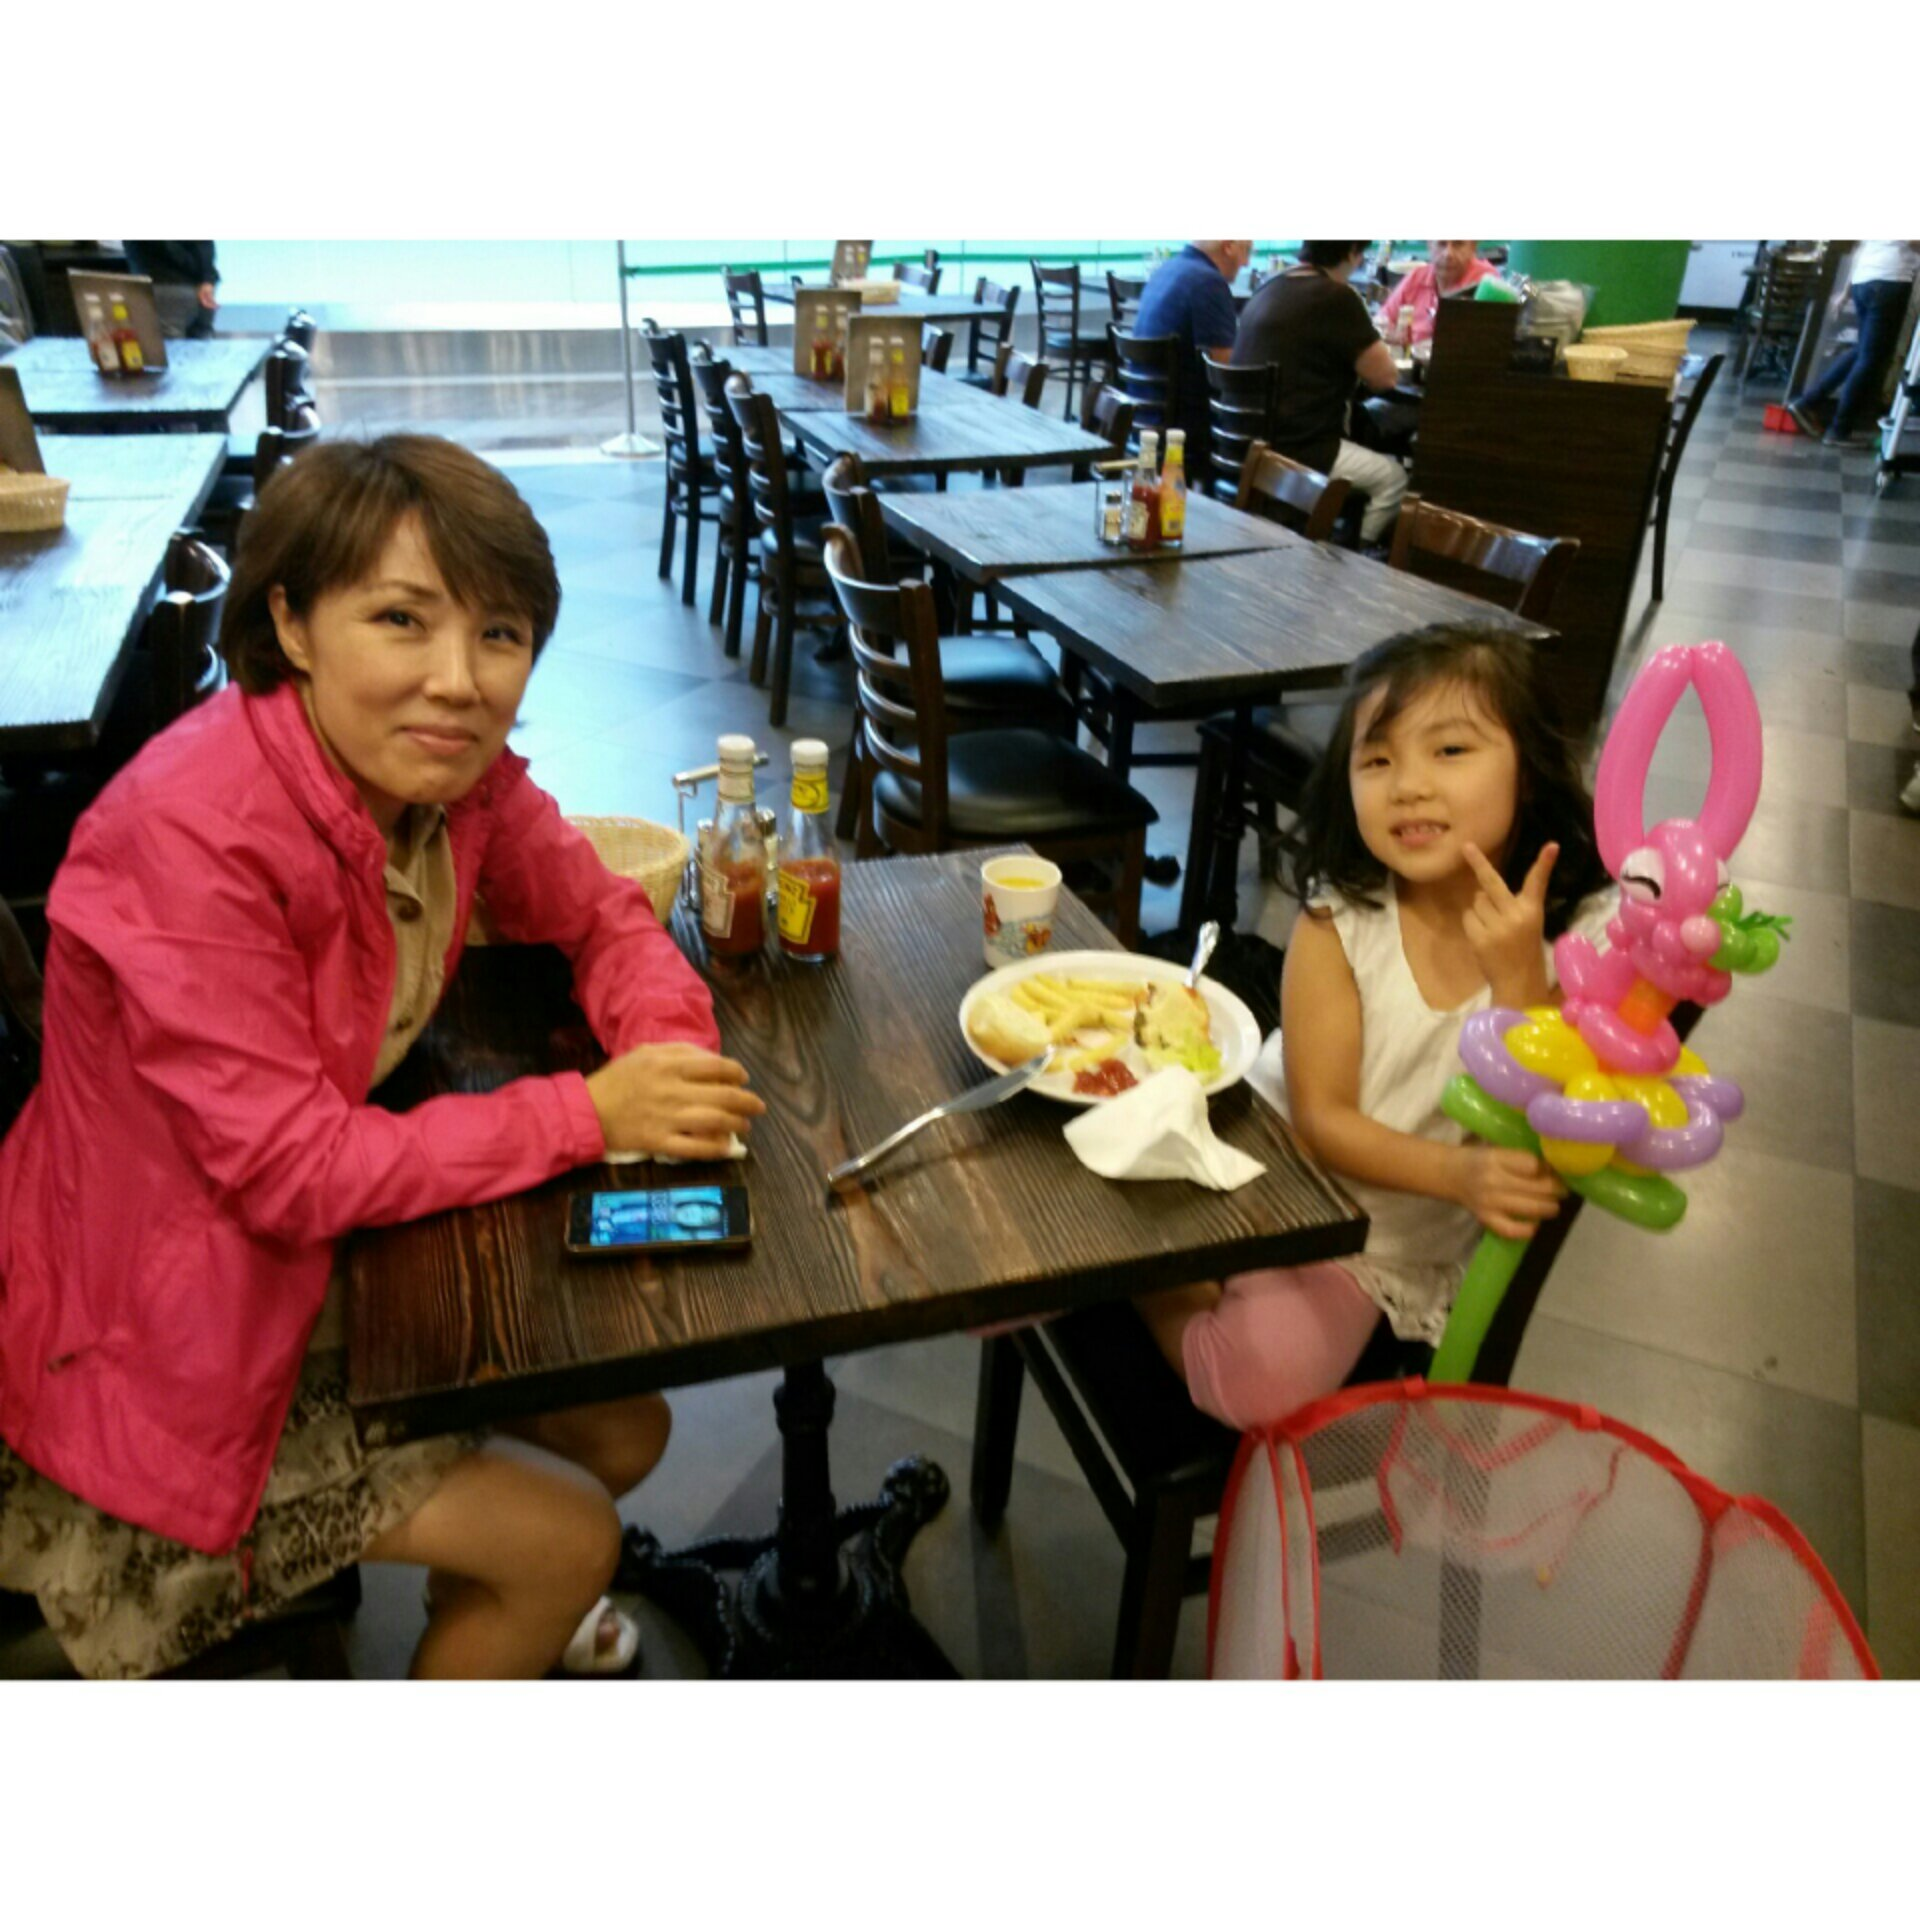 , Another day at Krazy Burgers!, Singapore Balloon Decoration Services - Balloon Workshop and Balloon Sculpting